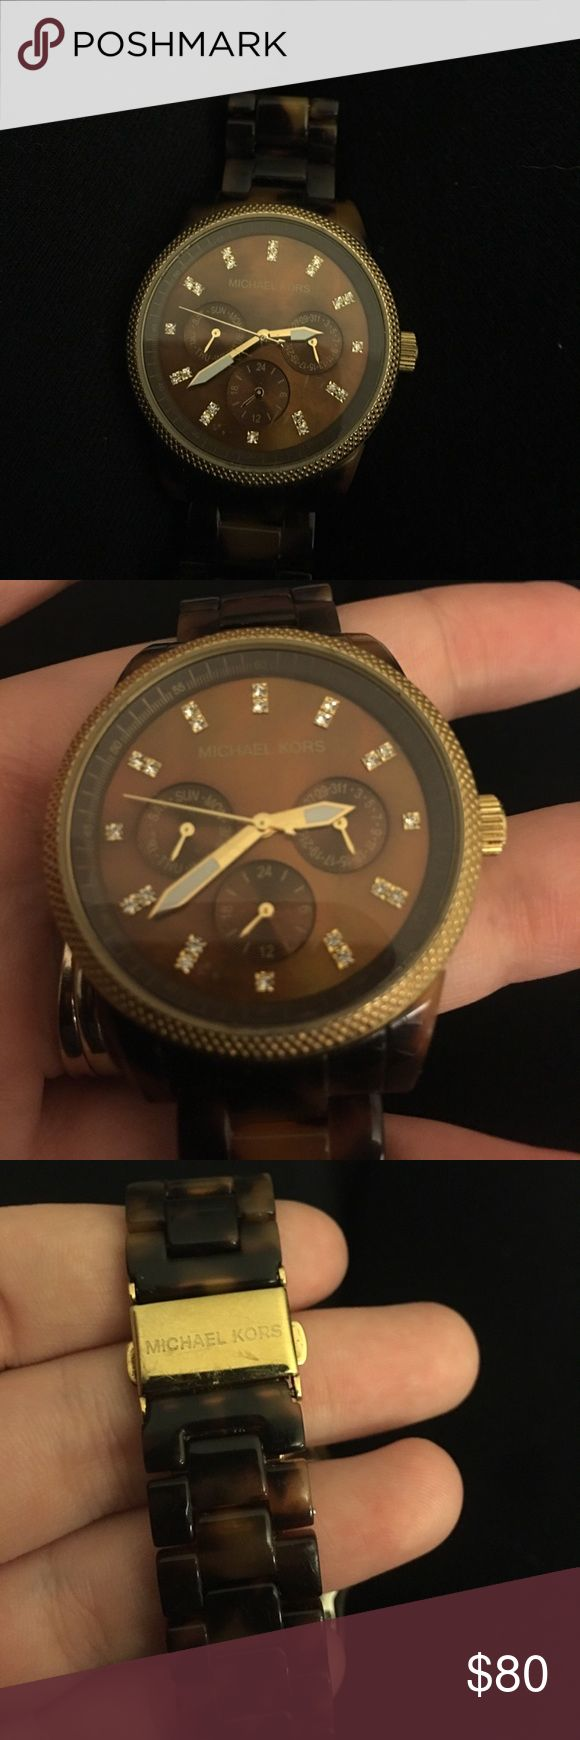 Michael Kors Tortoise Shell Watch 5038 Genuine Michael Kors Tortoise Shell and Gold watch. Needs a new battery. Does-not come with Links, Box or New battery. You can replace these at any Jewelry store. Michael Kors Accessories Watches